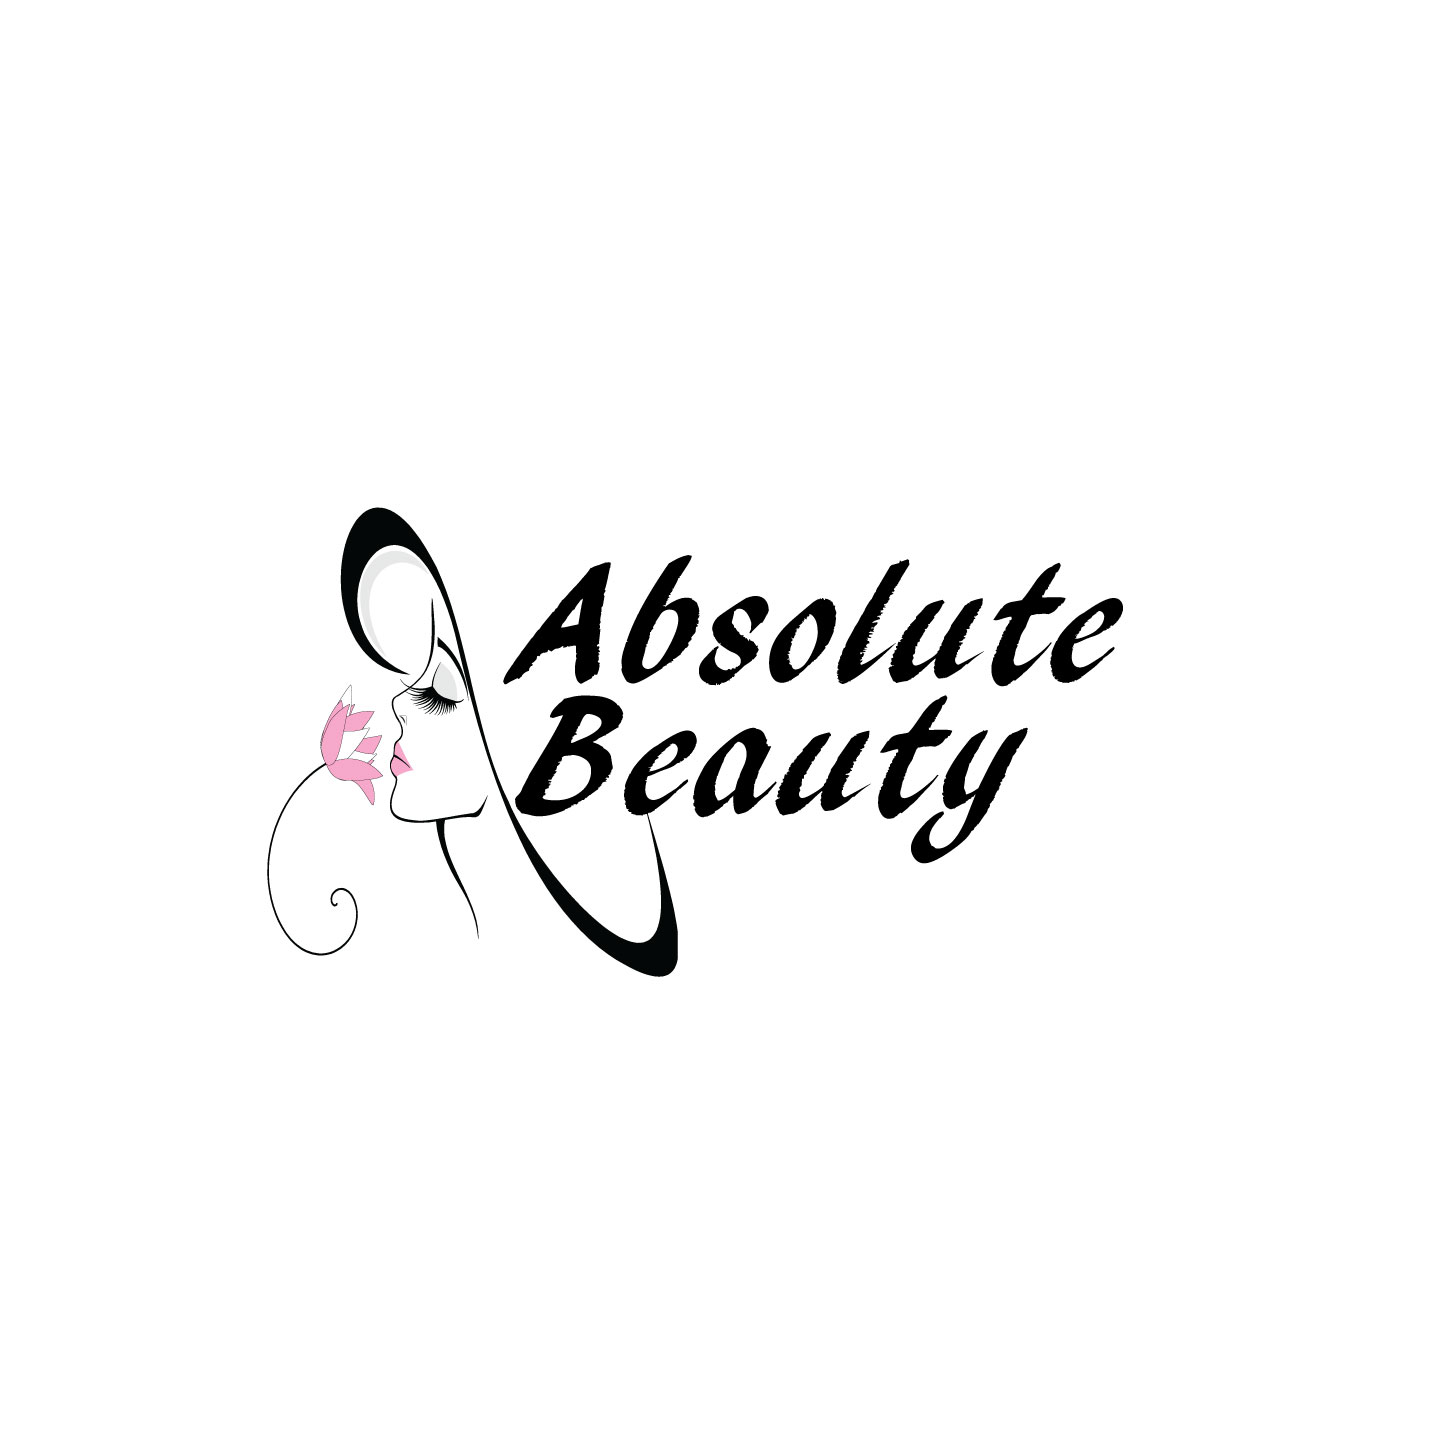 Modern professional logo design for absolute beauty by for Absolute beauty salon